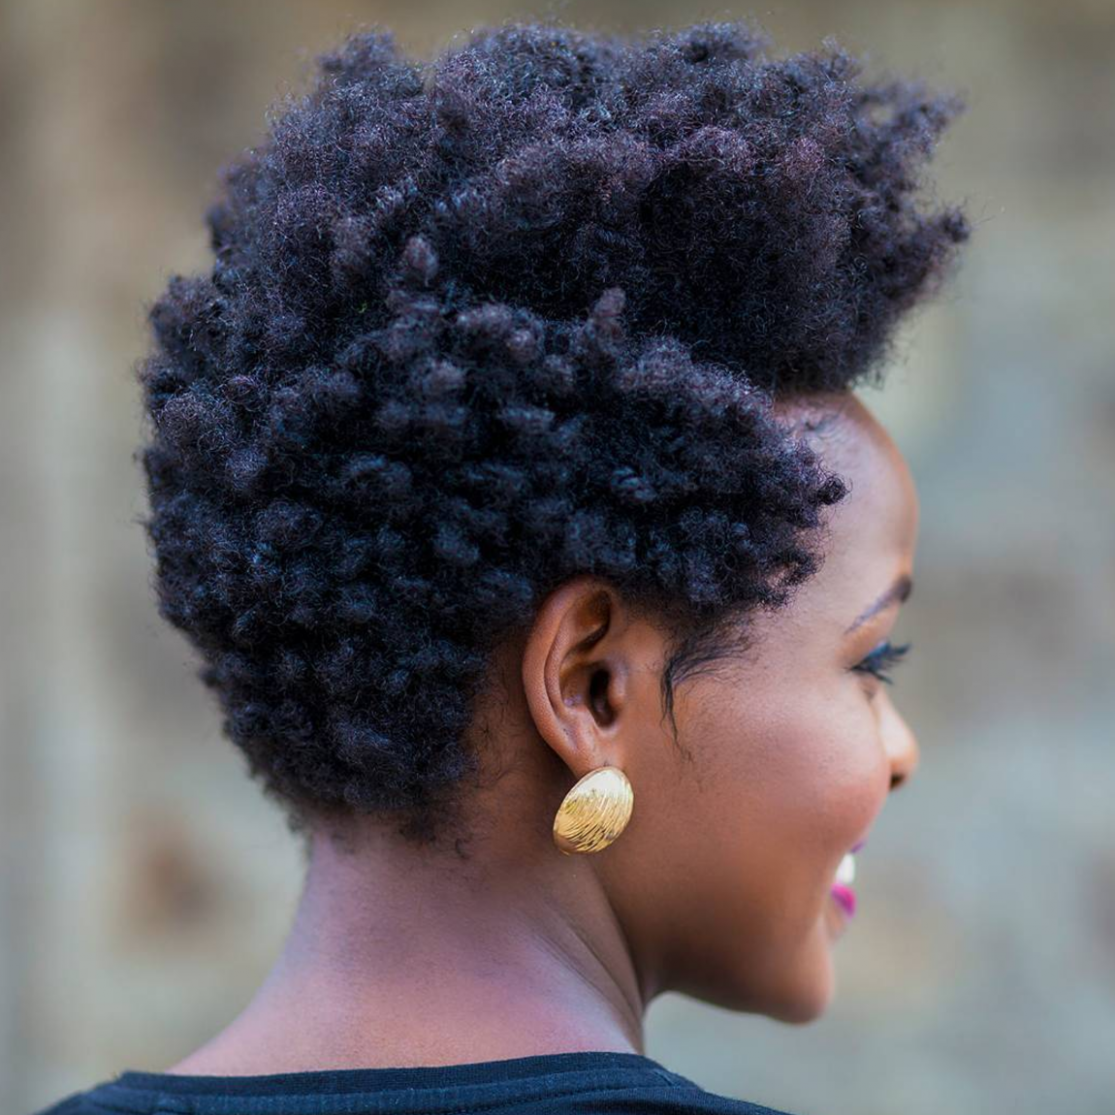 Easy Hairstyles For 9C Hair Essence Natural Hairstyles For Short 4C Hair